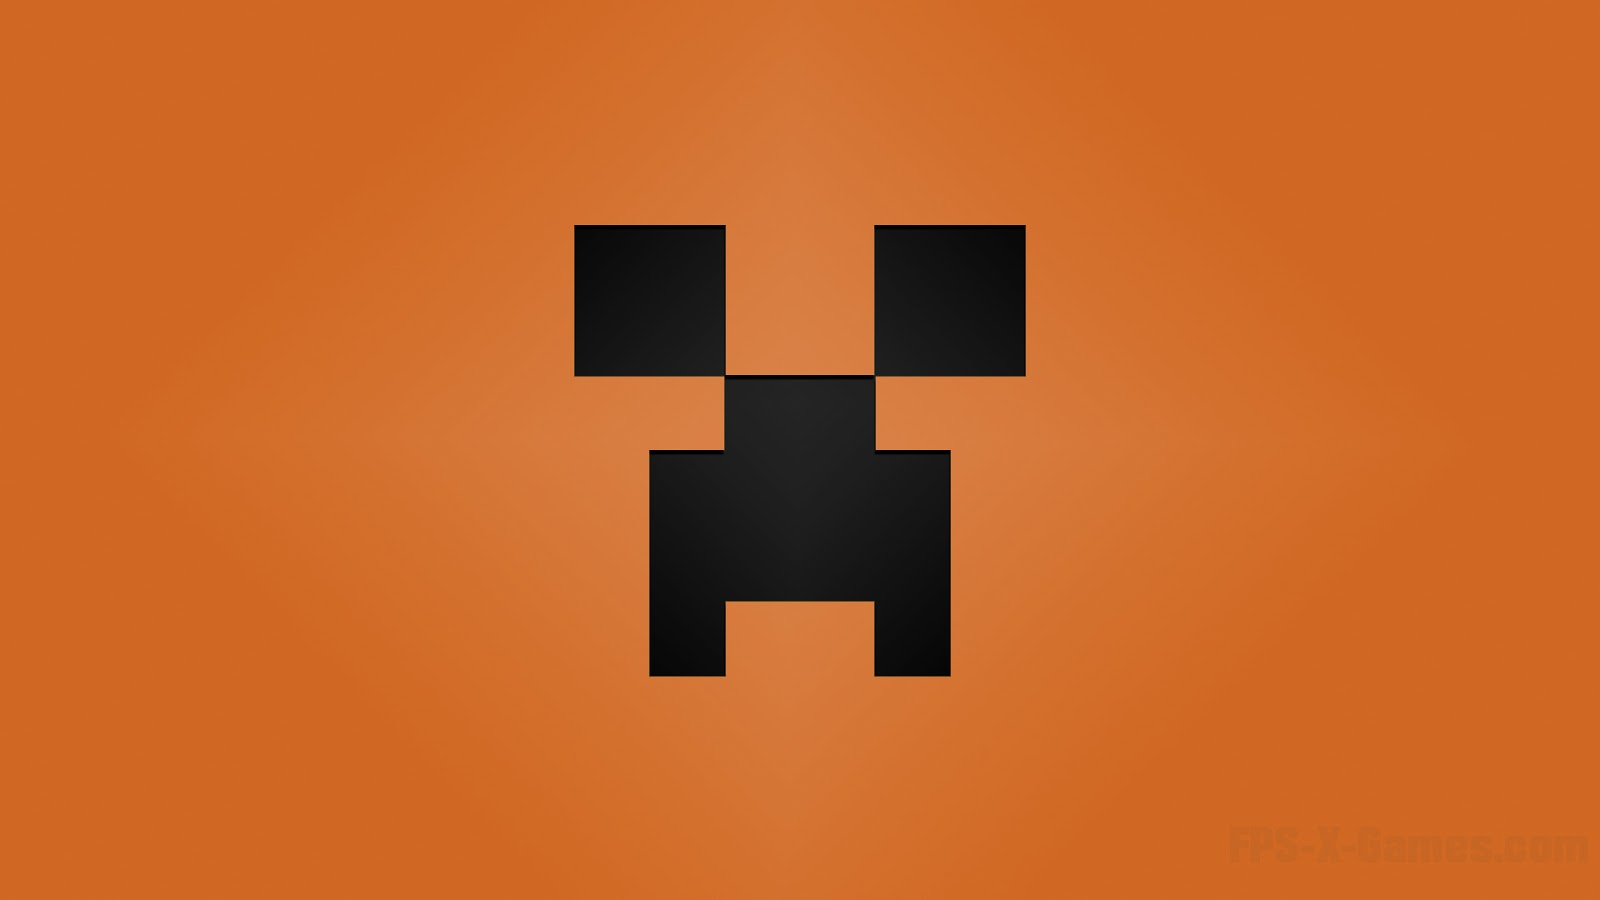 Cool Wallpaper Minecraft Colorful - colorful-minecraft-creeper-wallpaper-orange  Perfect Image Reference_45430.jpg